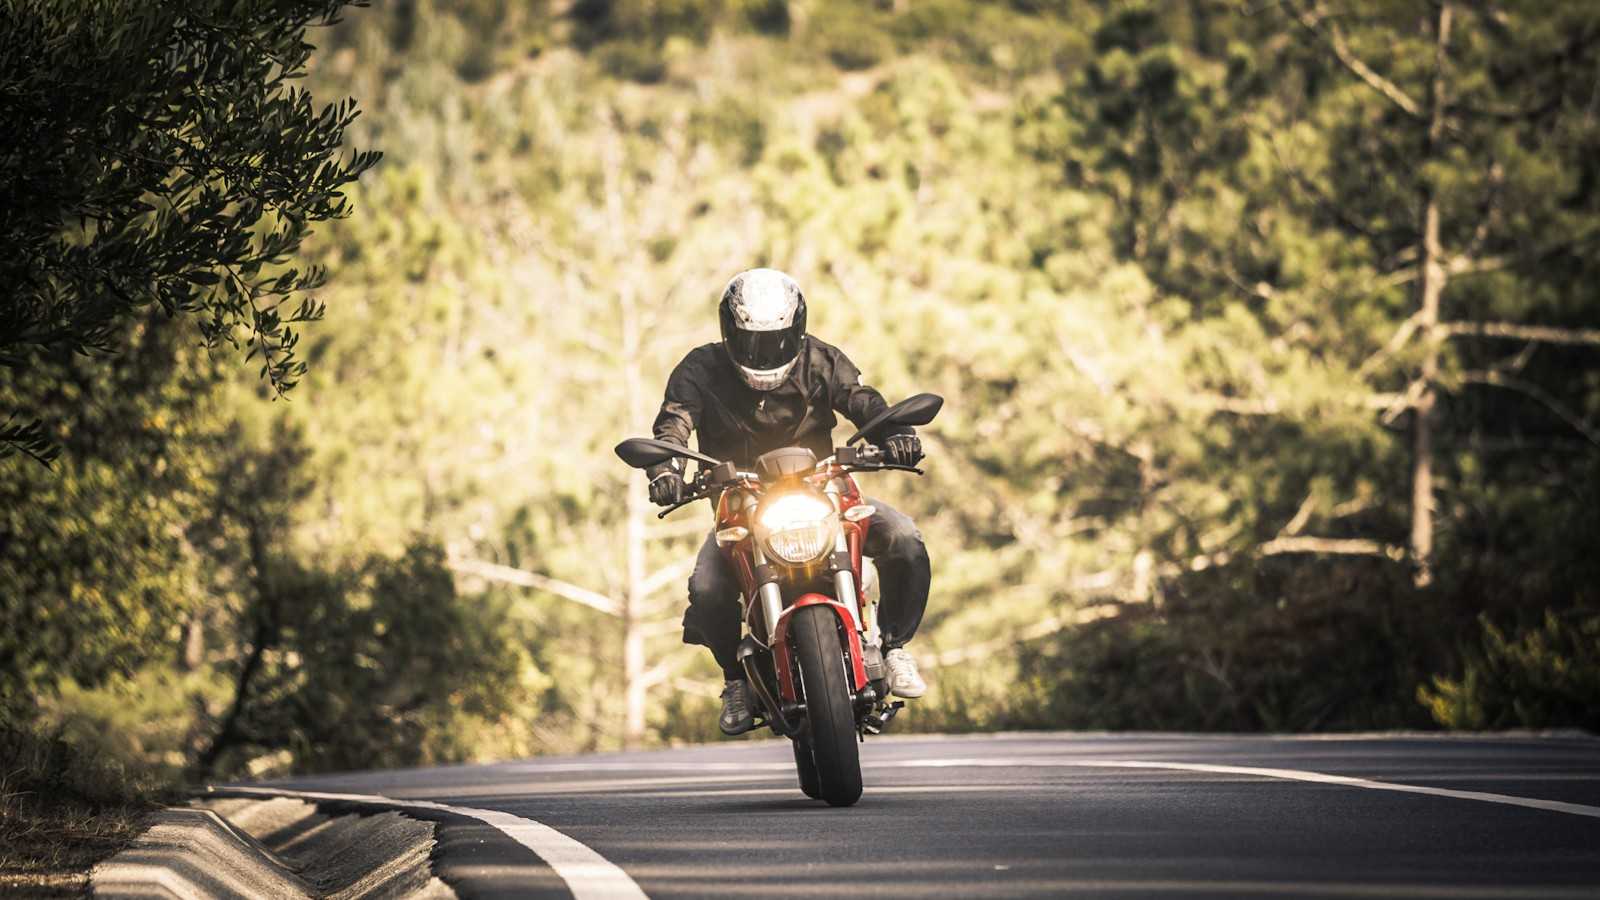 Motorbikes are awesome